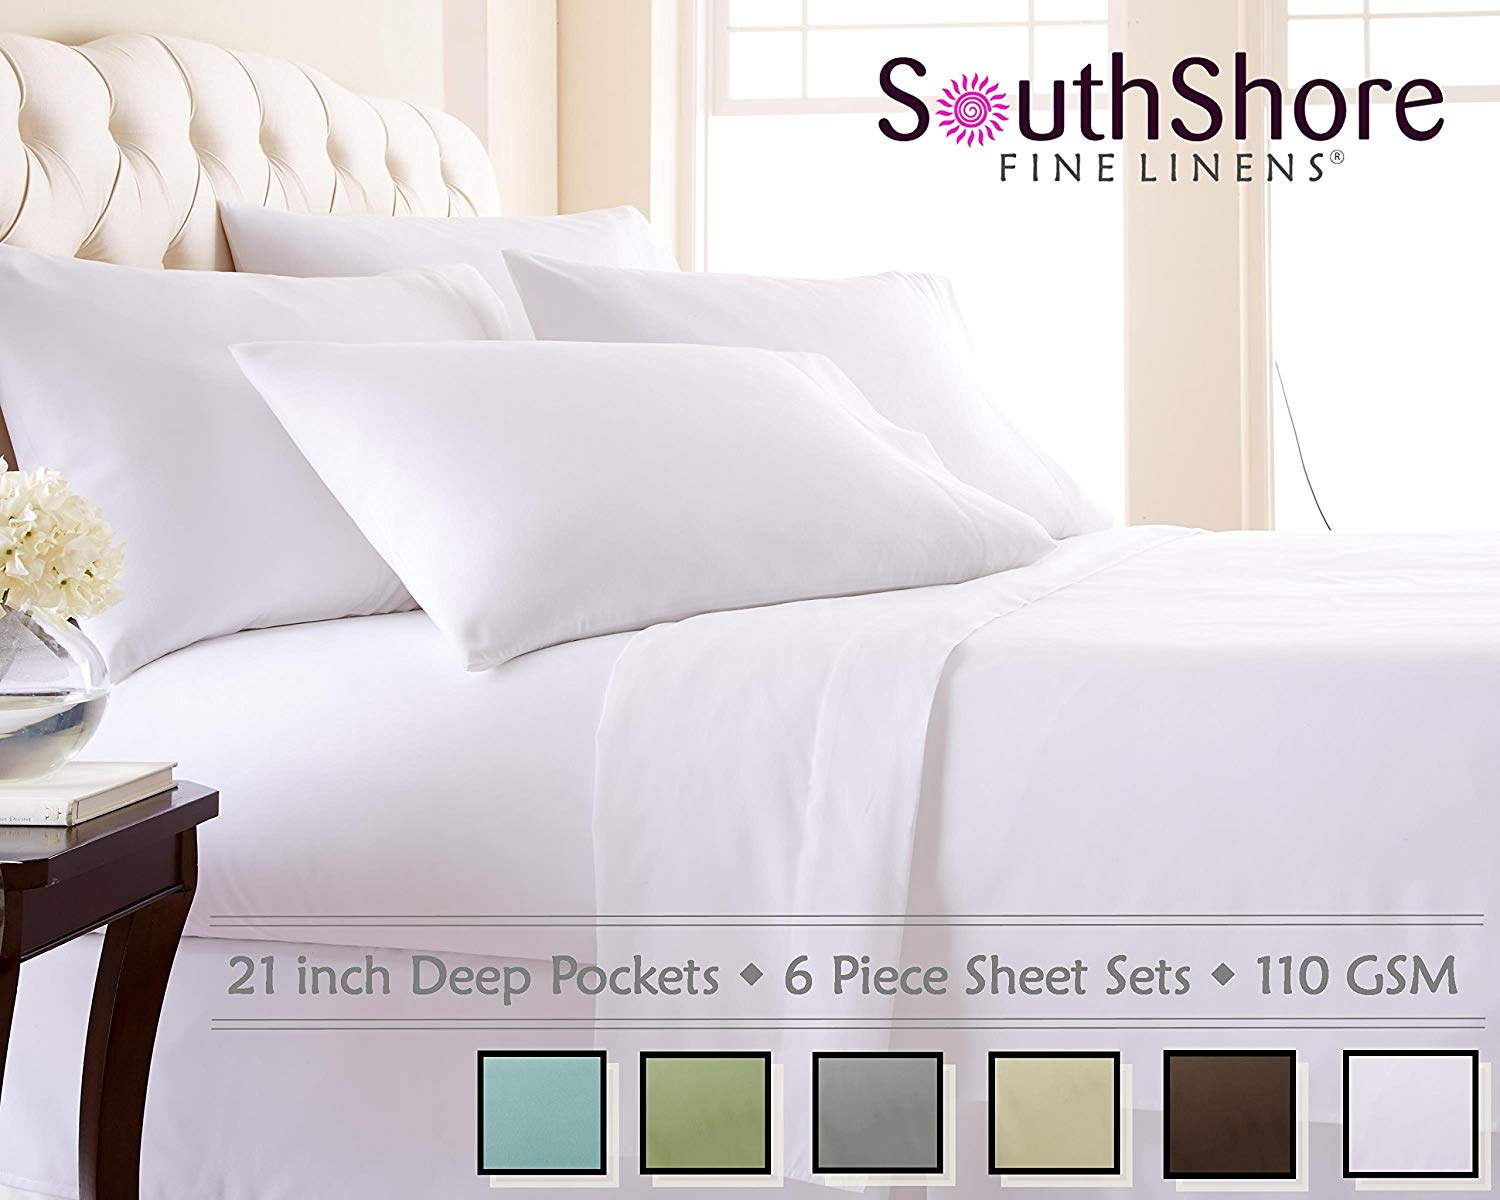 Southshore Fine Linens 110 GSM Microfiber Sheet Set - High Thread Count Sheets